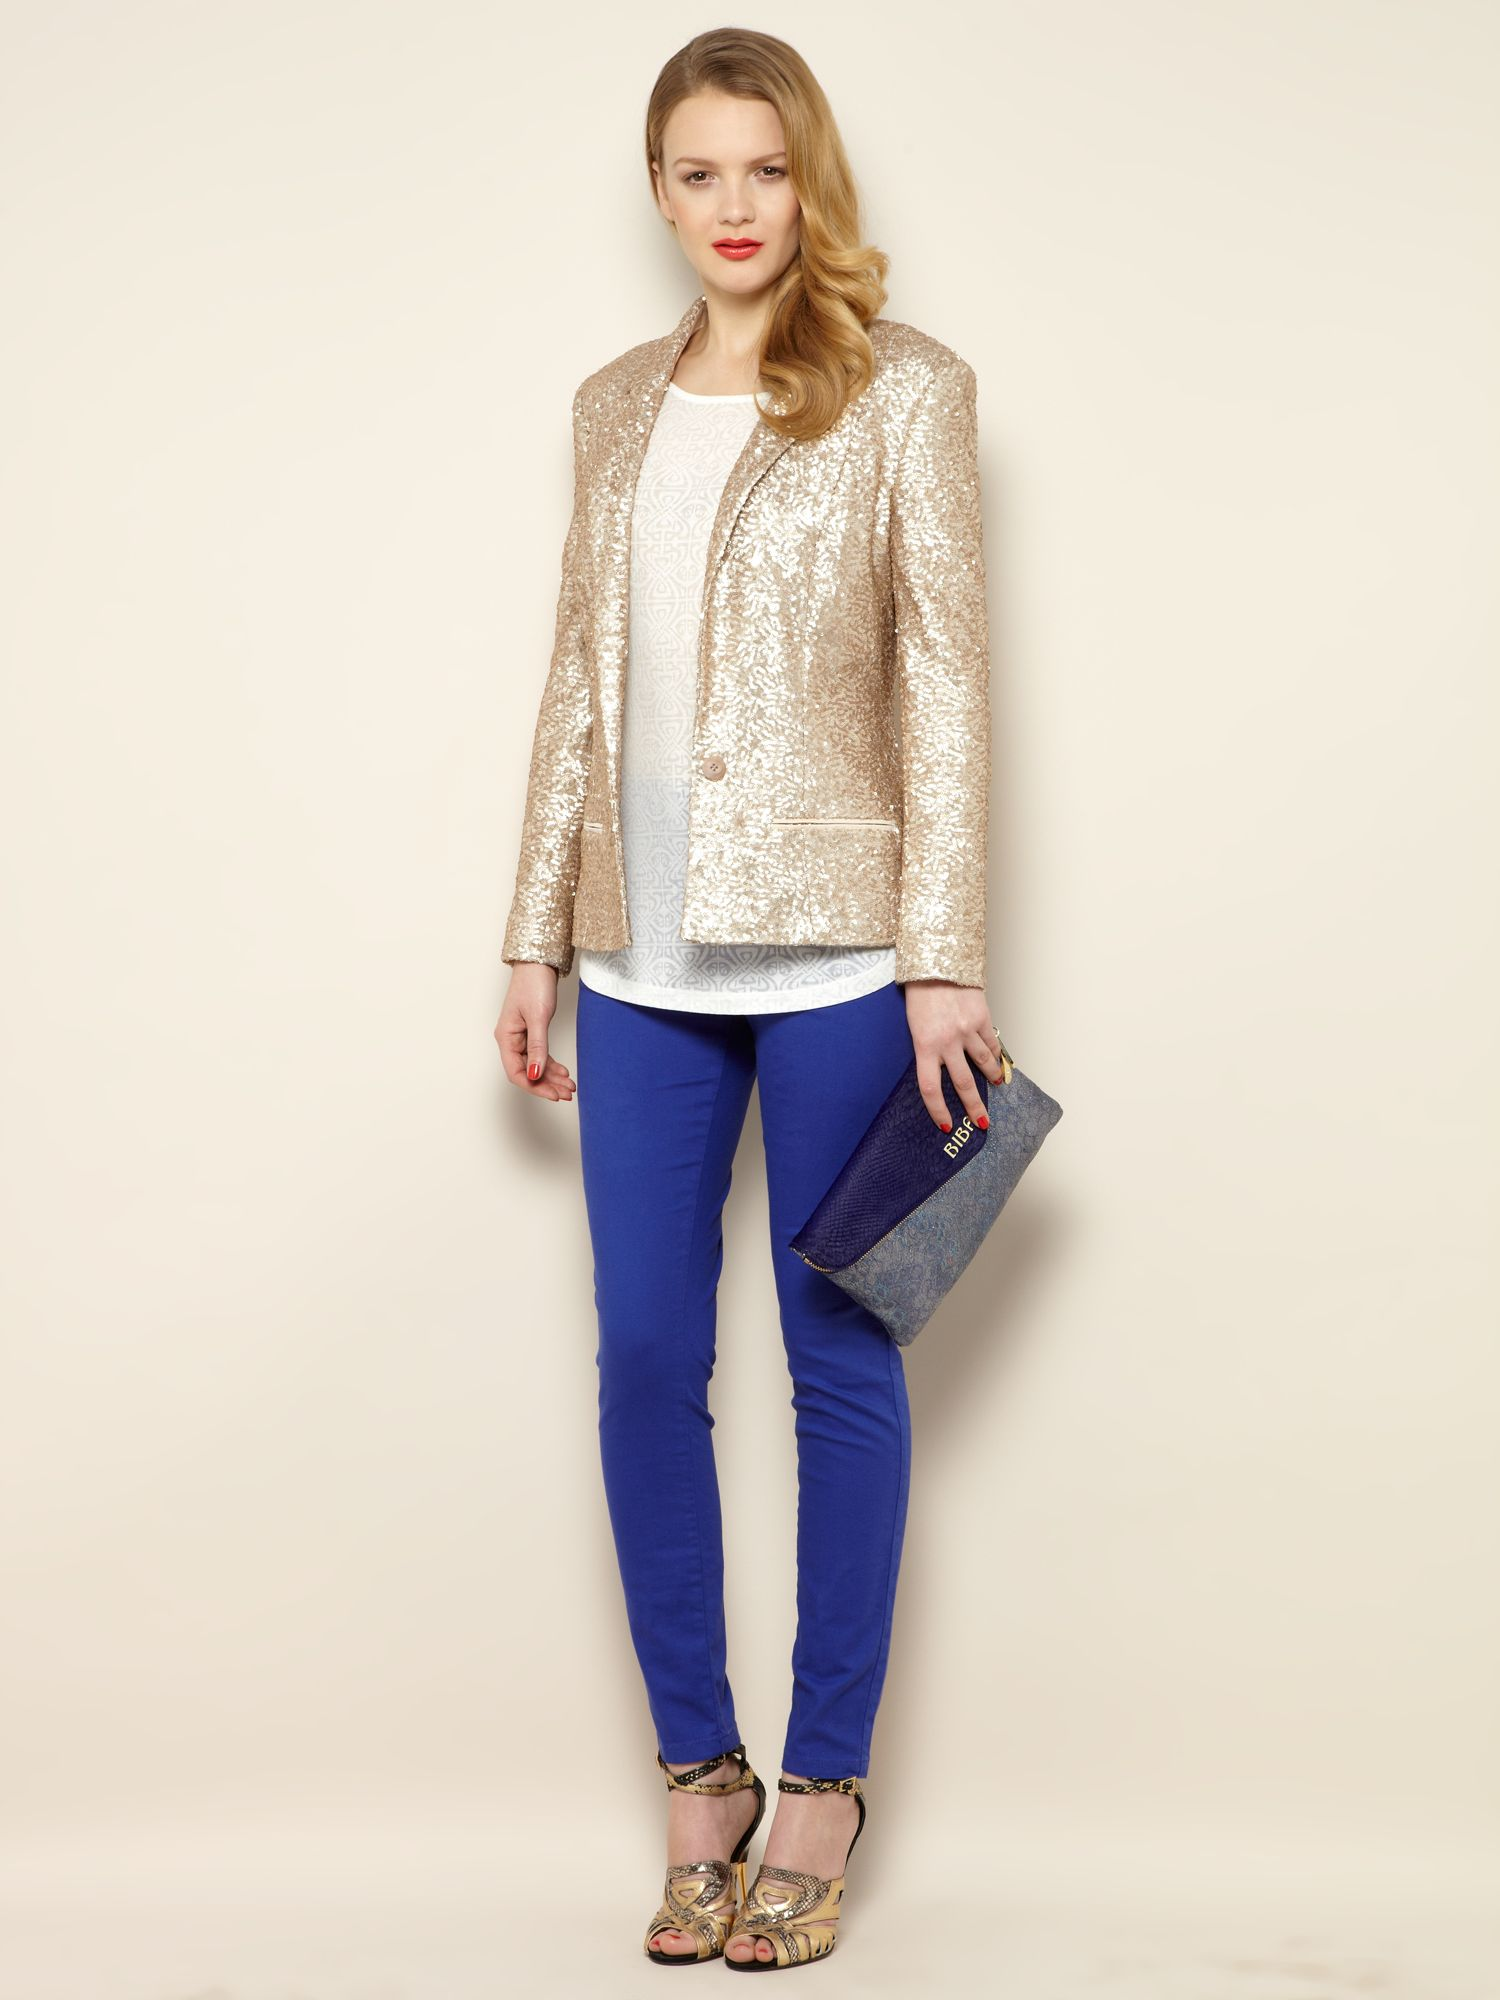 Sequin tailored jacket